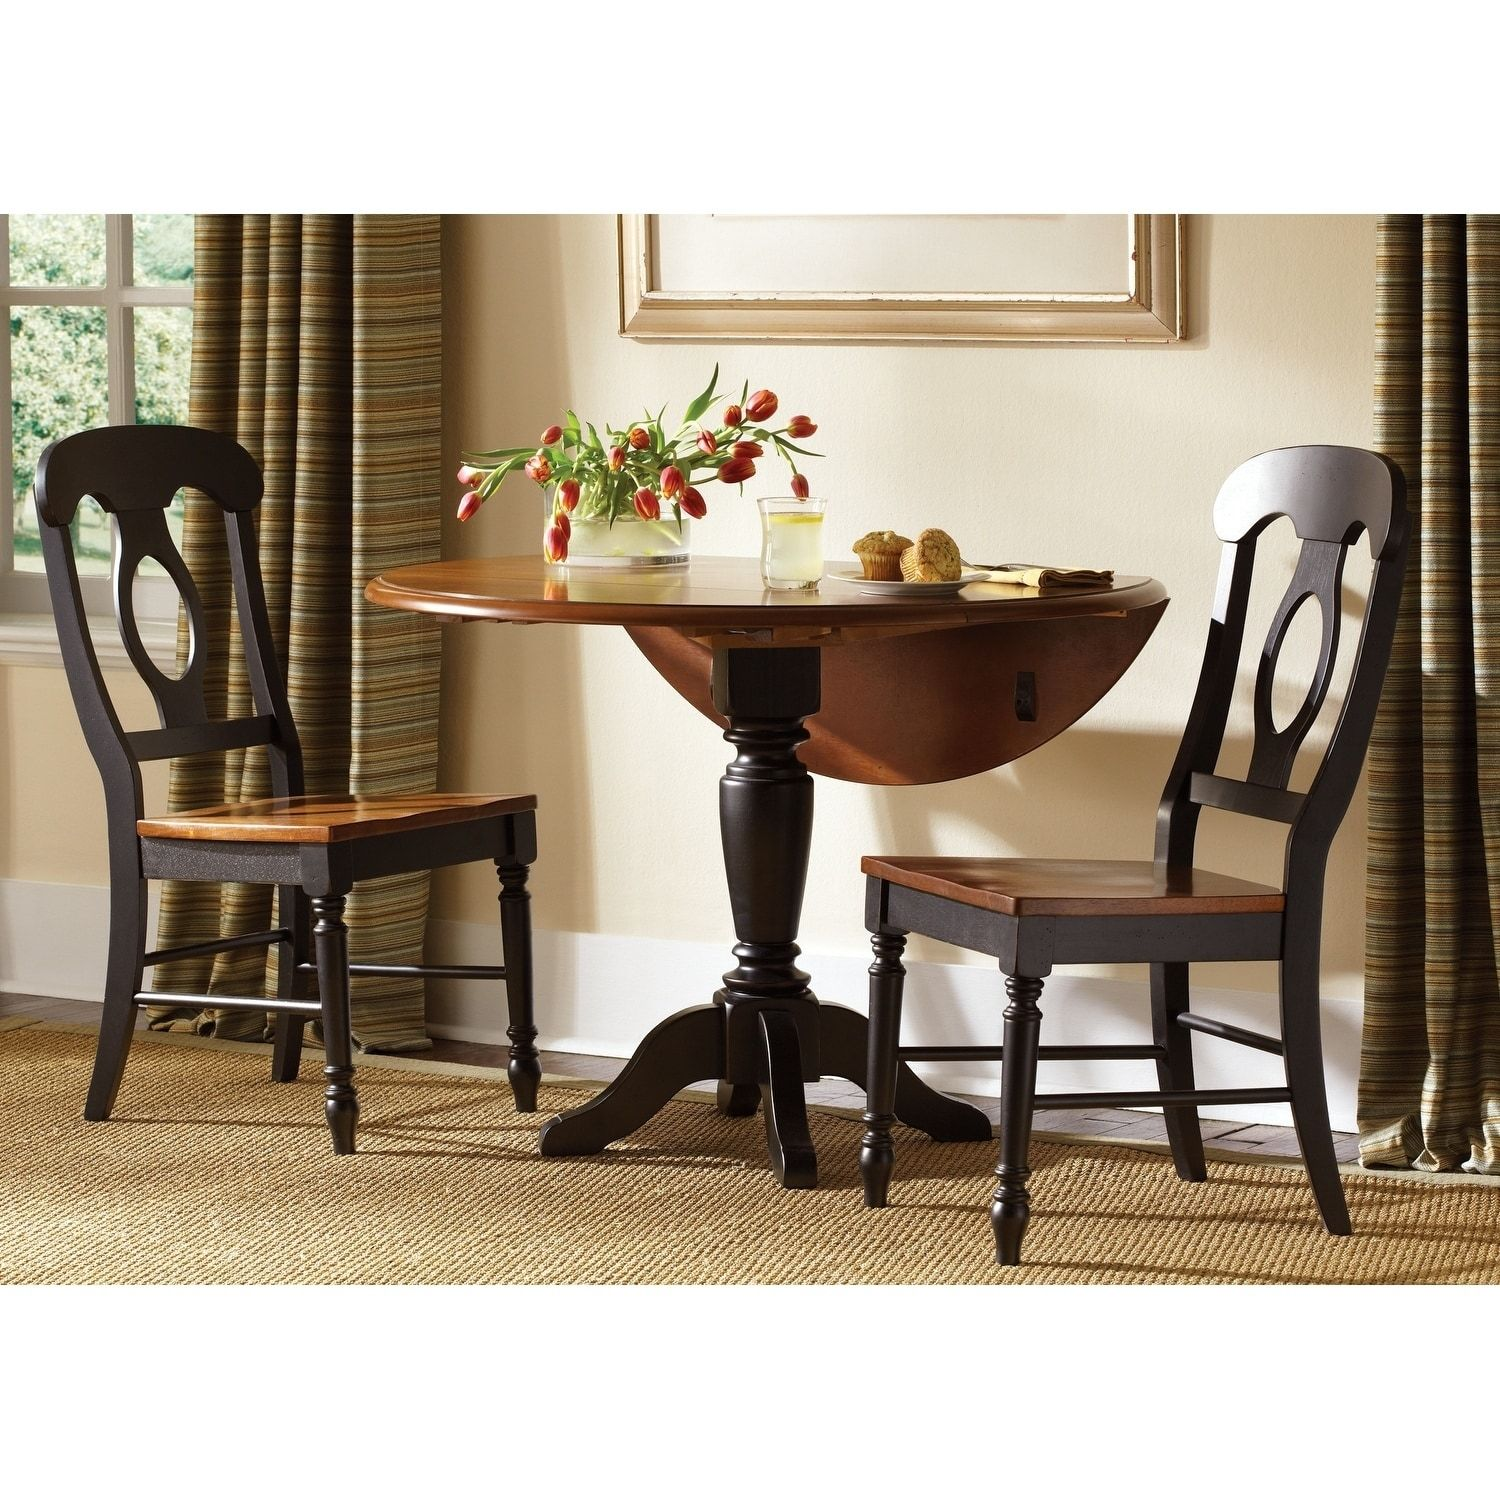 Overstock Com Online Shopping Bedding Furniture Electronics Jewelry Clothing More Small Kitchen Table Sets Furniture Dining Table Small Kitchen Tables